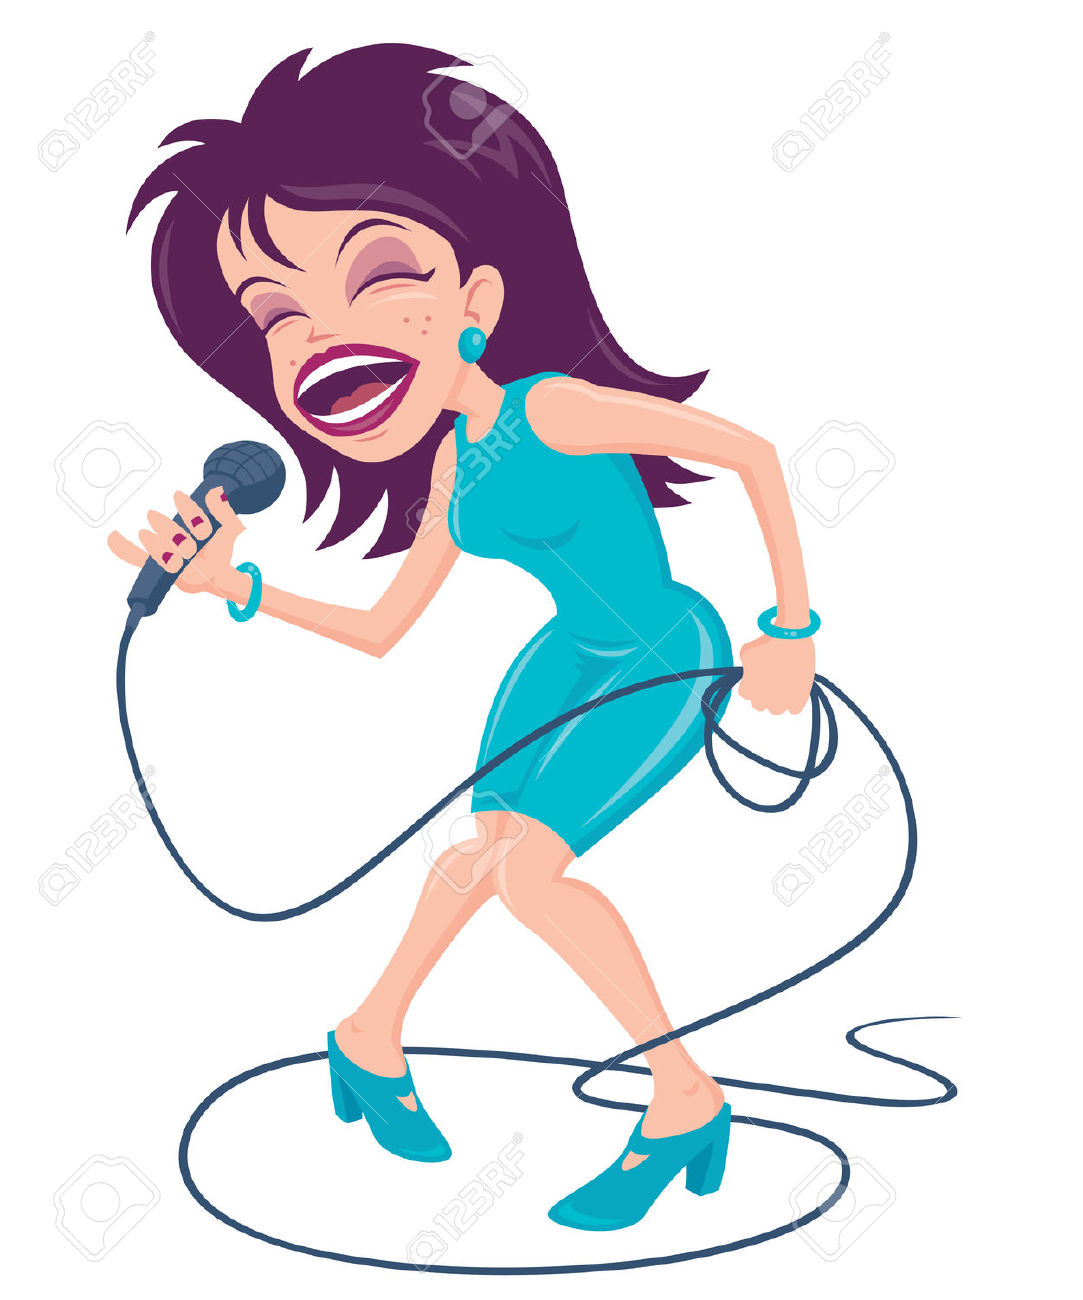 1392x600 Boots Clipart Country Singer 1083x1300 Cartoon Image Group 74